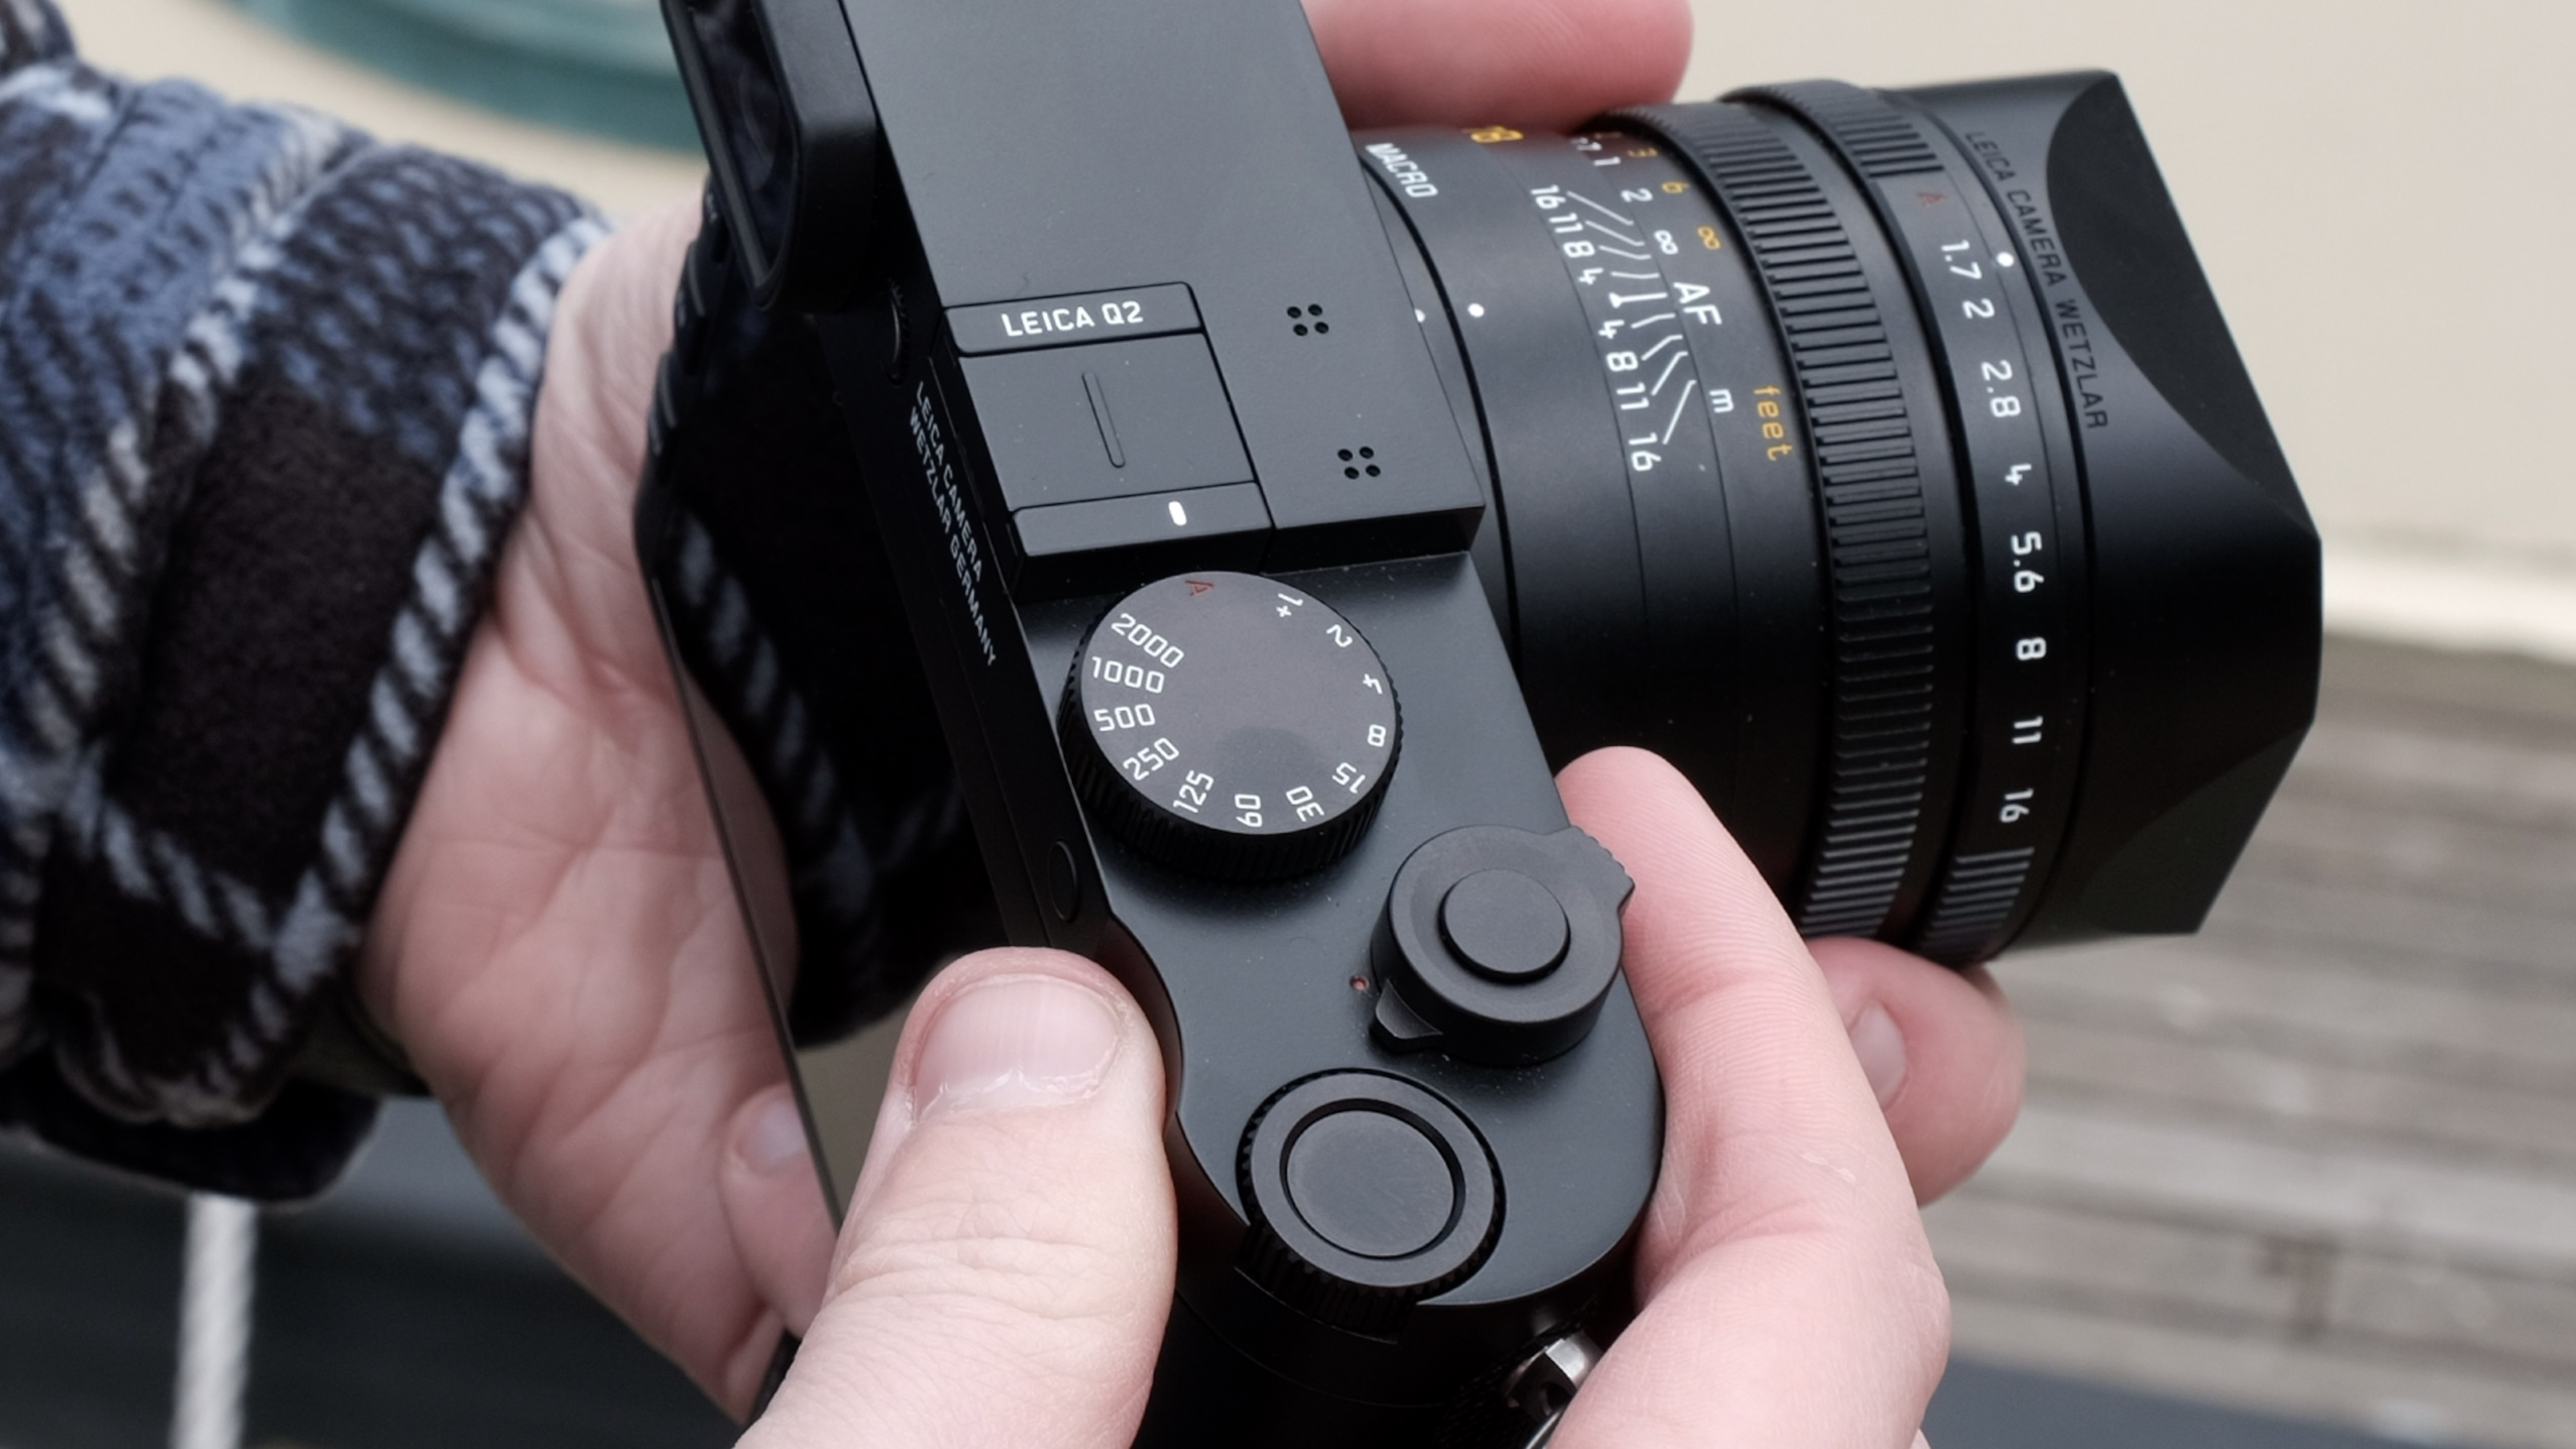 Video: Leica Q2 overview: Digital Photography Review